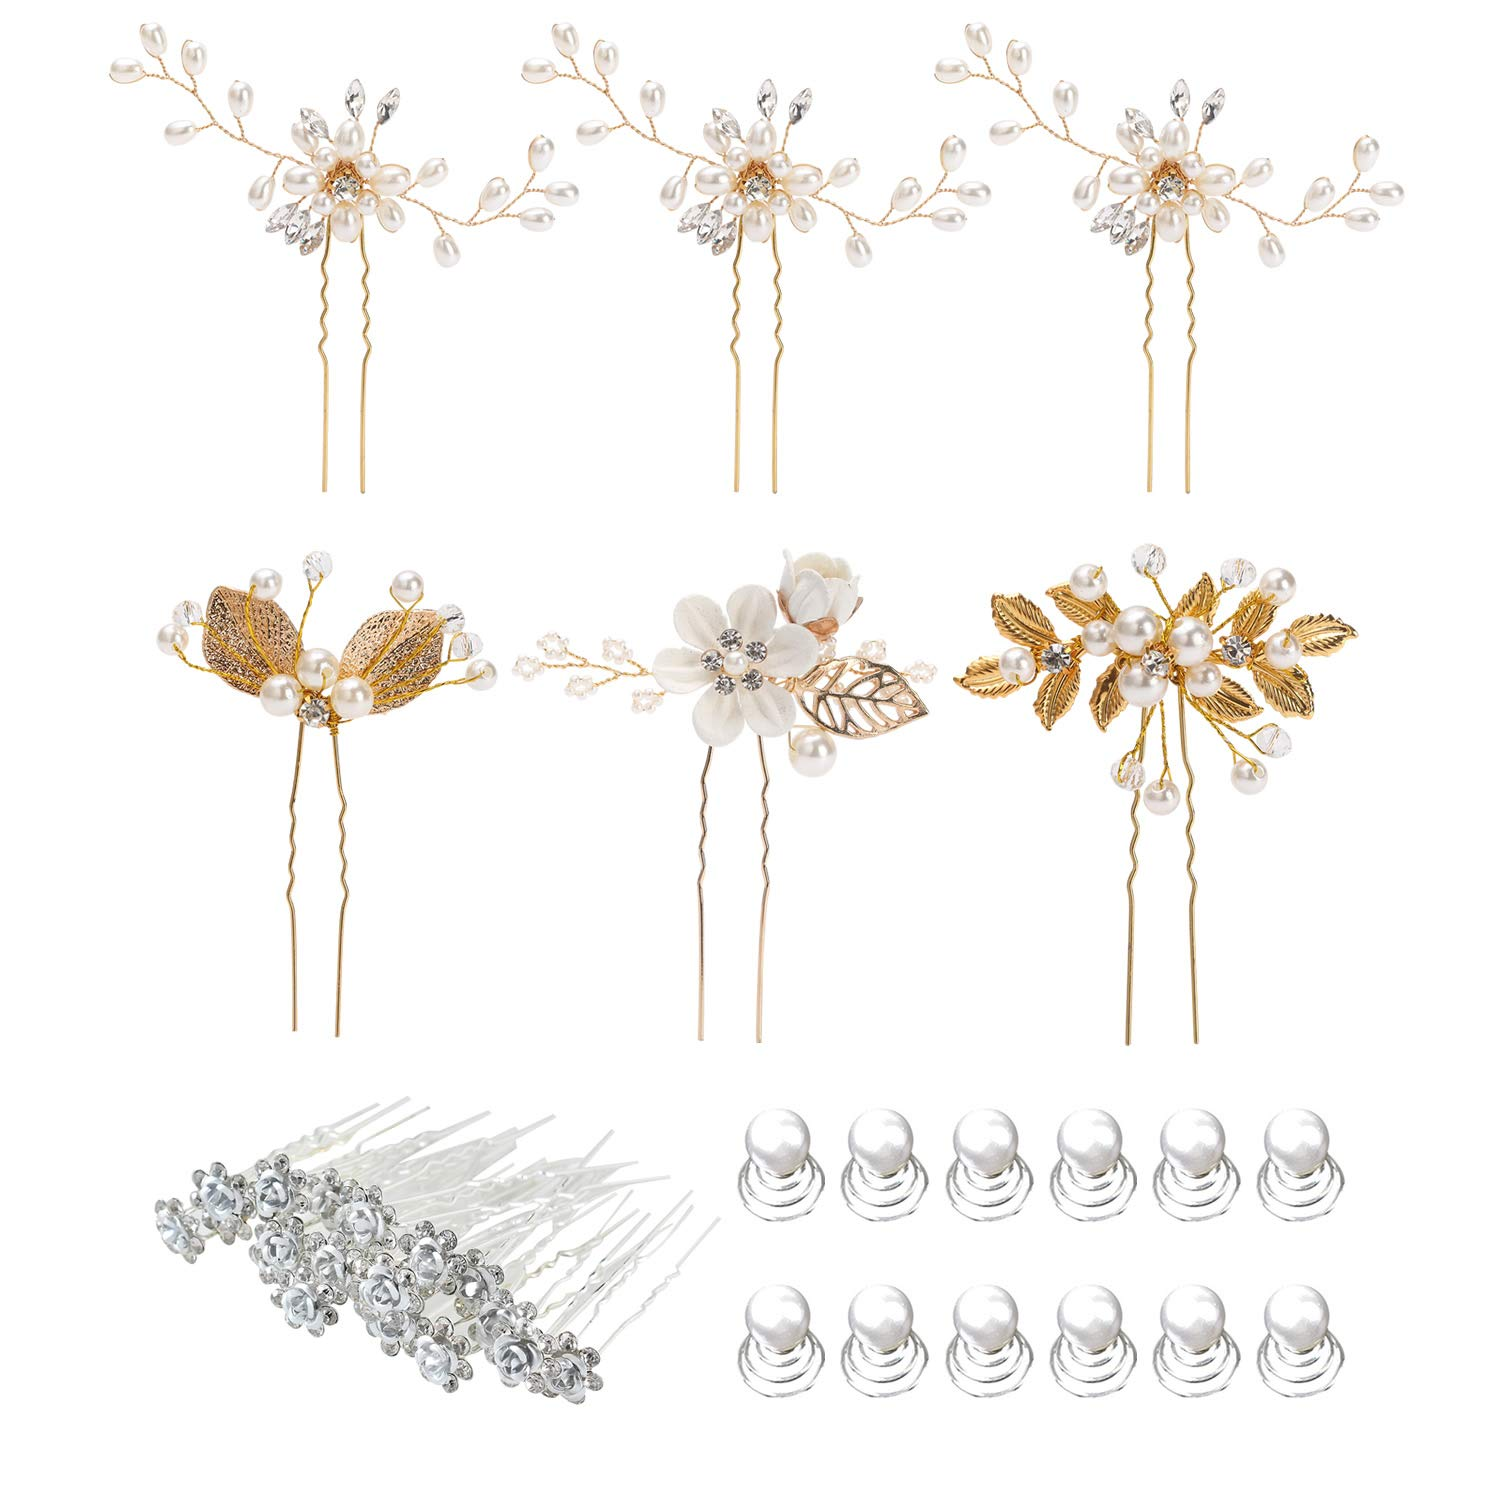 38 Pack Women Wedding Bridal Bride Hair Clips Side Combs Gold Decorative Bobby Pins Barrettes Vines Party Prom Headpiece Hairstyle Accessories Vintage Crystal Rhinestone Pearl Flower Ivory Silver Gold by Angla